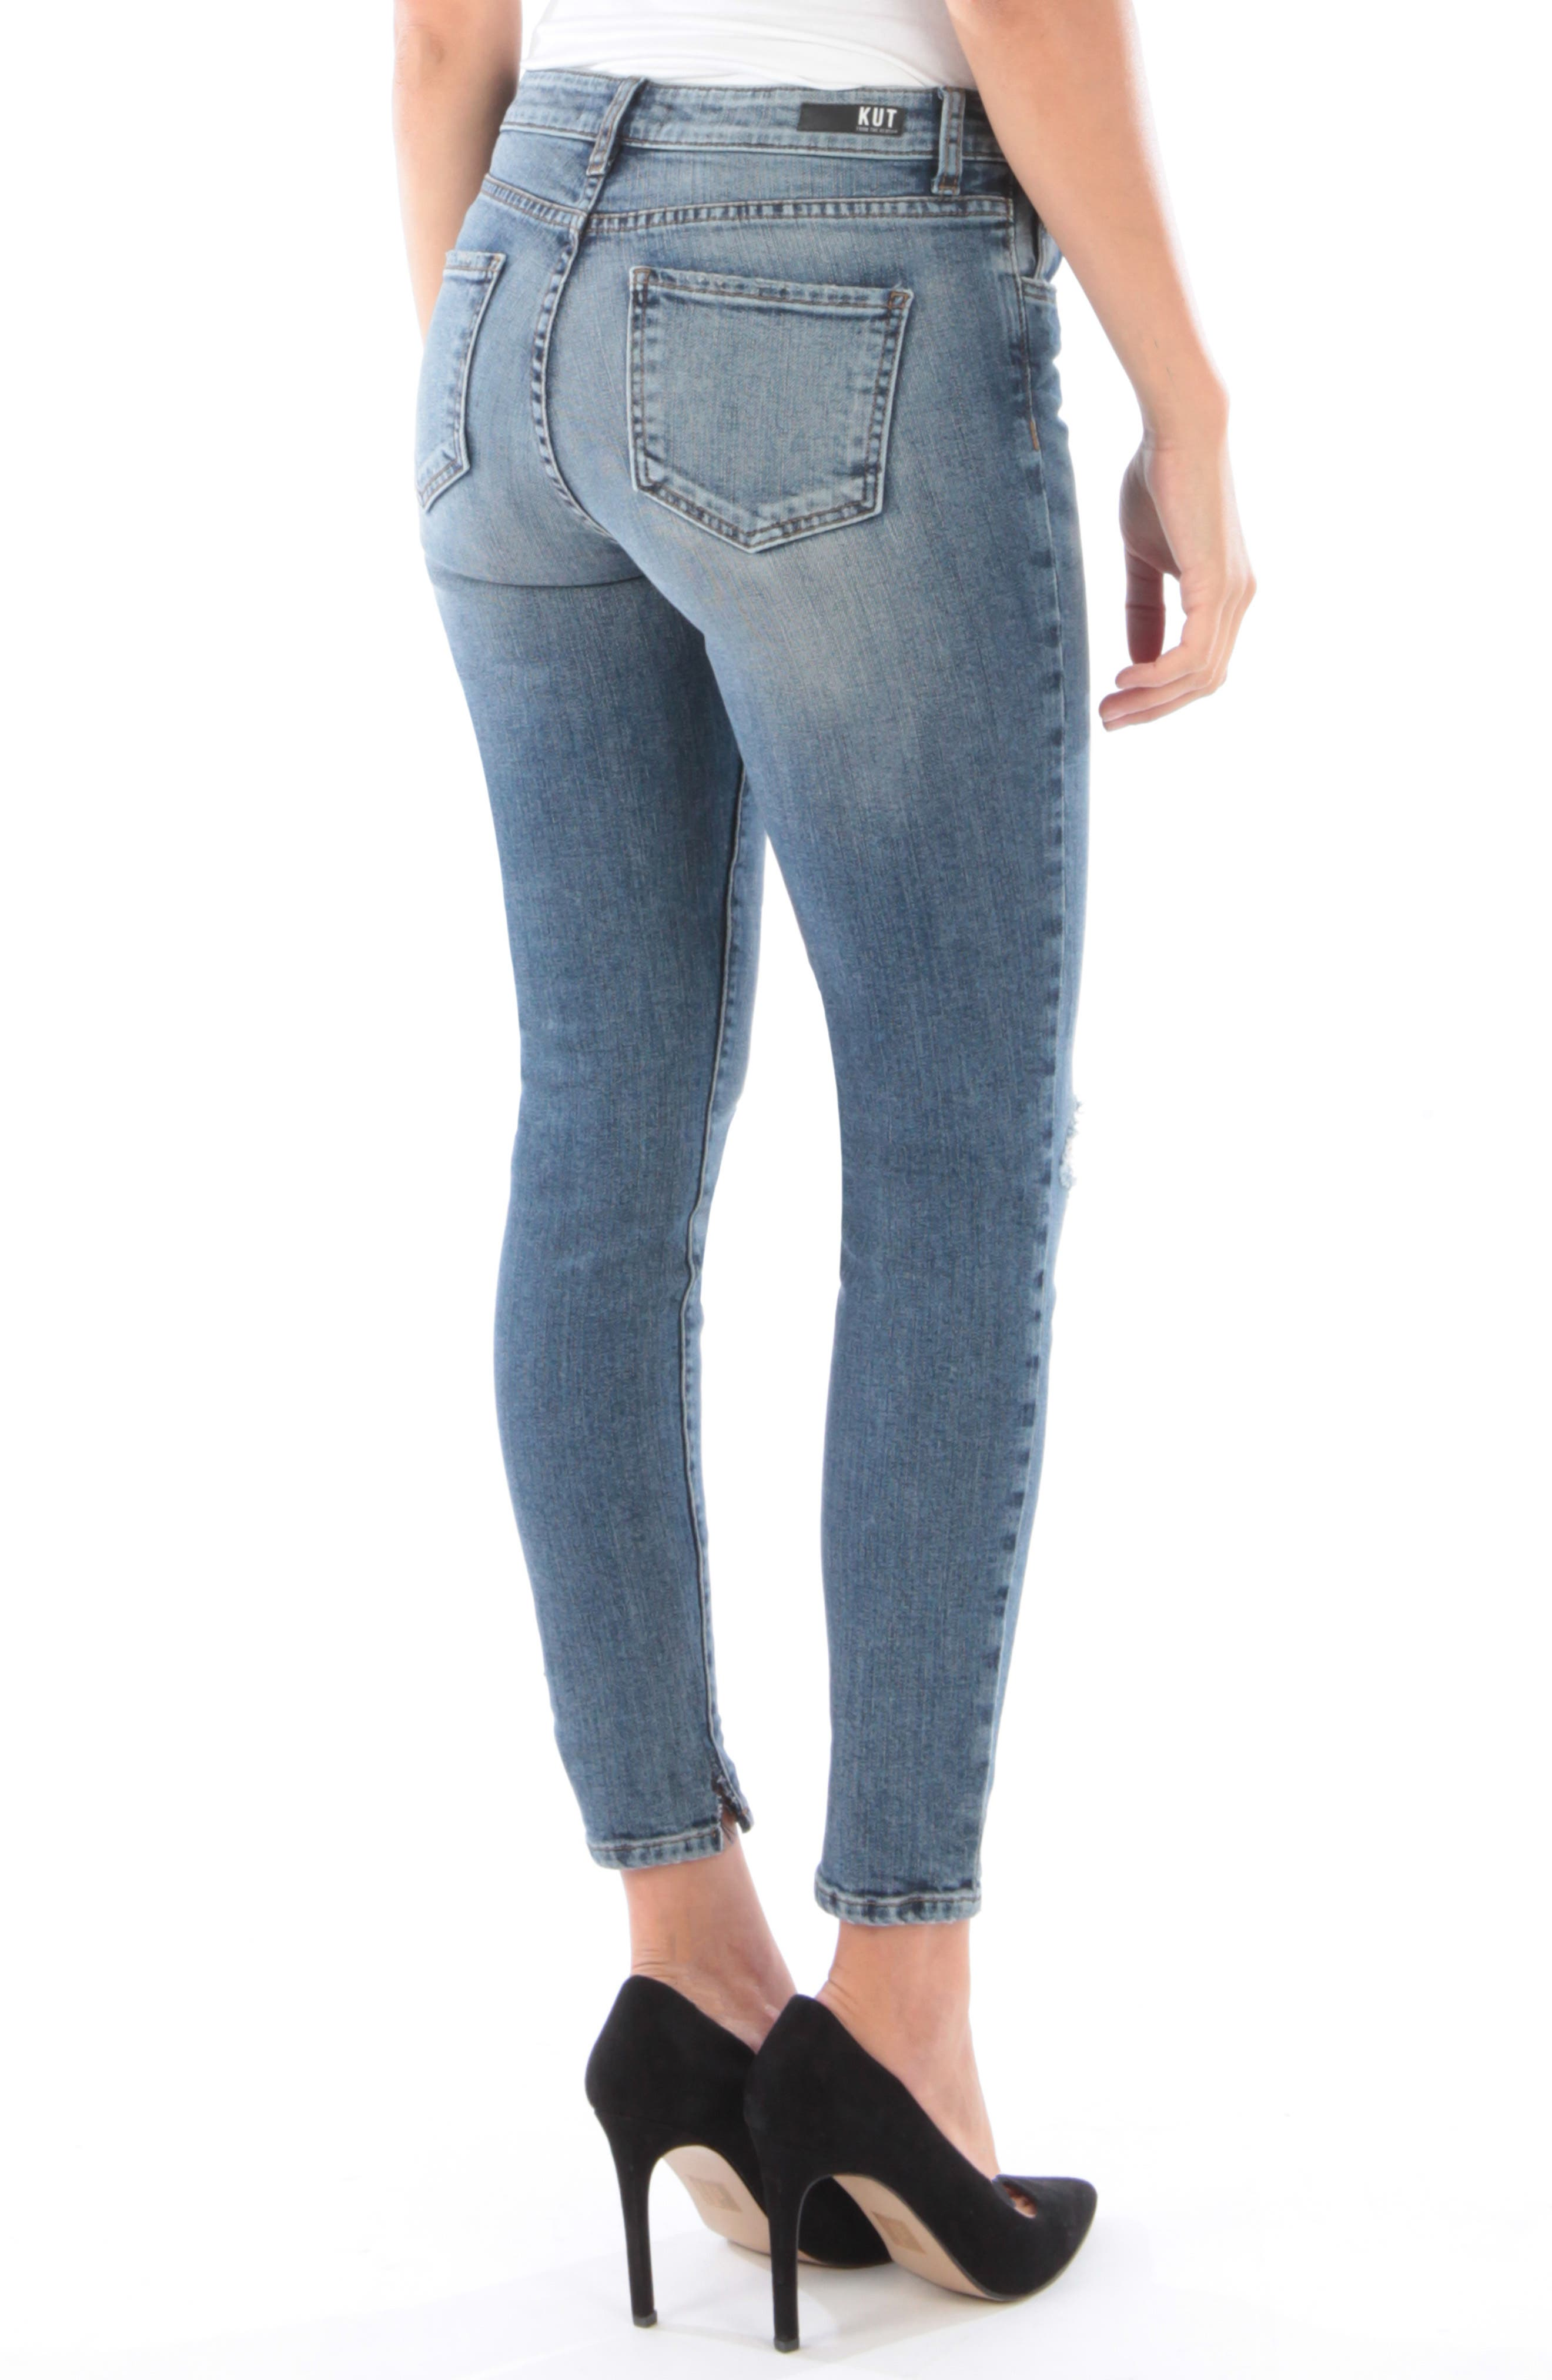 KUT FROM THE KLOTH, Donna Ripped High Waist Ankle Skinny Jeans, Alternate thumbnail 2, color, 402